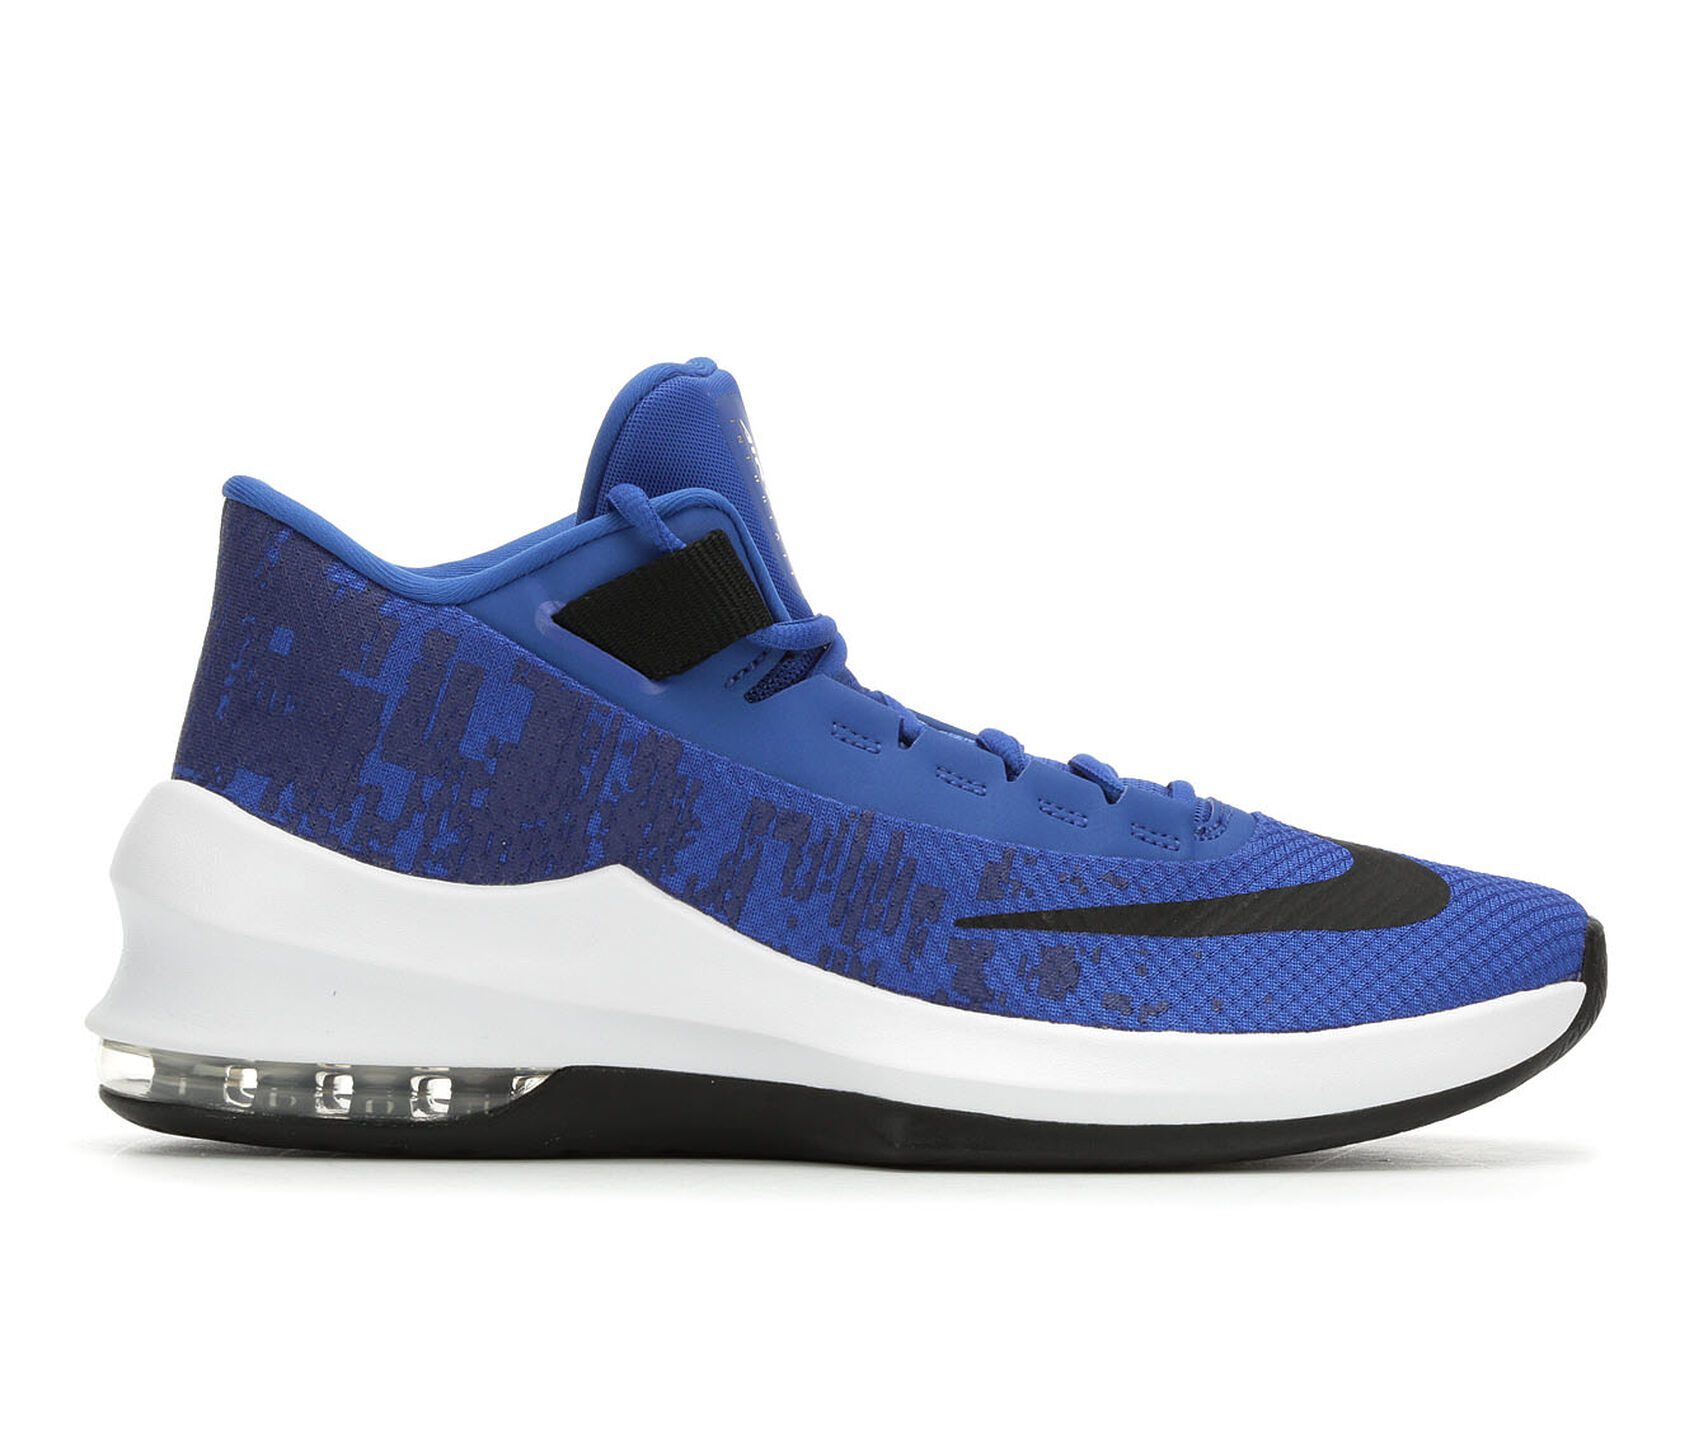 new arrivals f41a7 1a86d ... Nike Air Max Infuriate II Mid Basketball Shoes. Previous